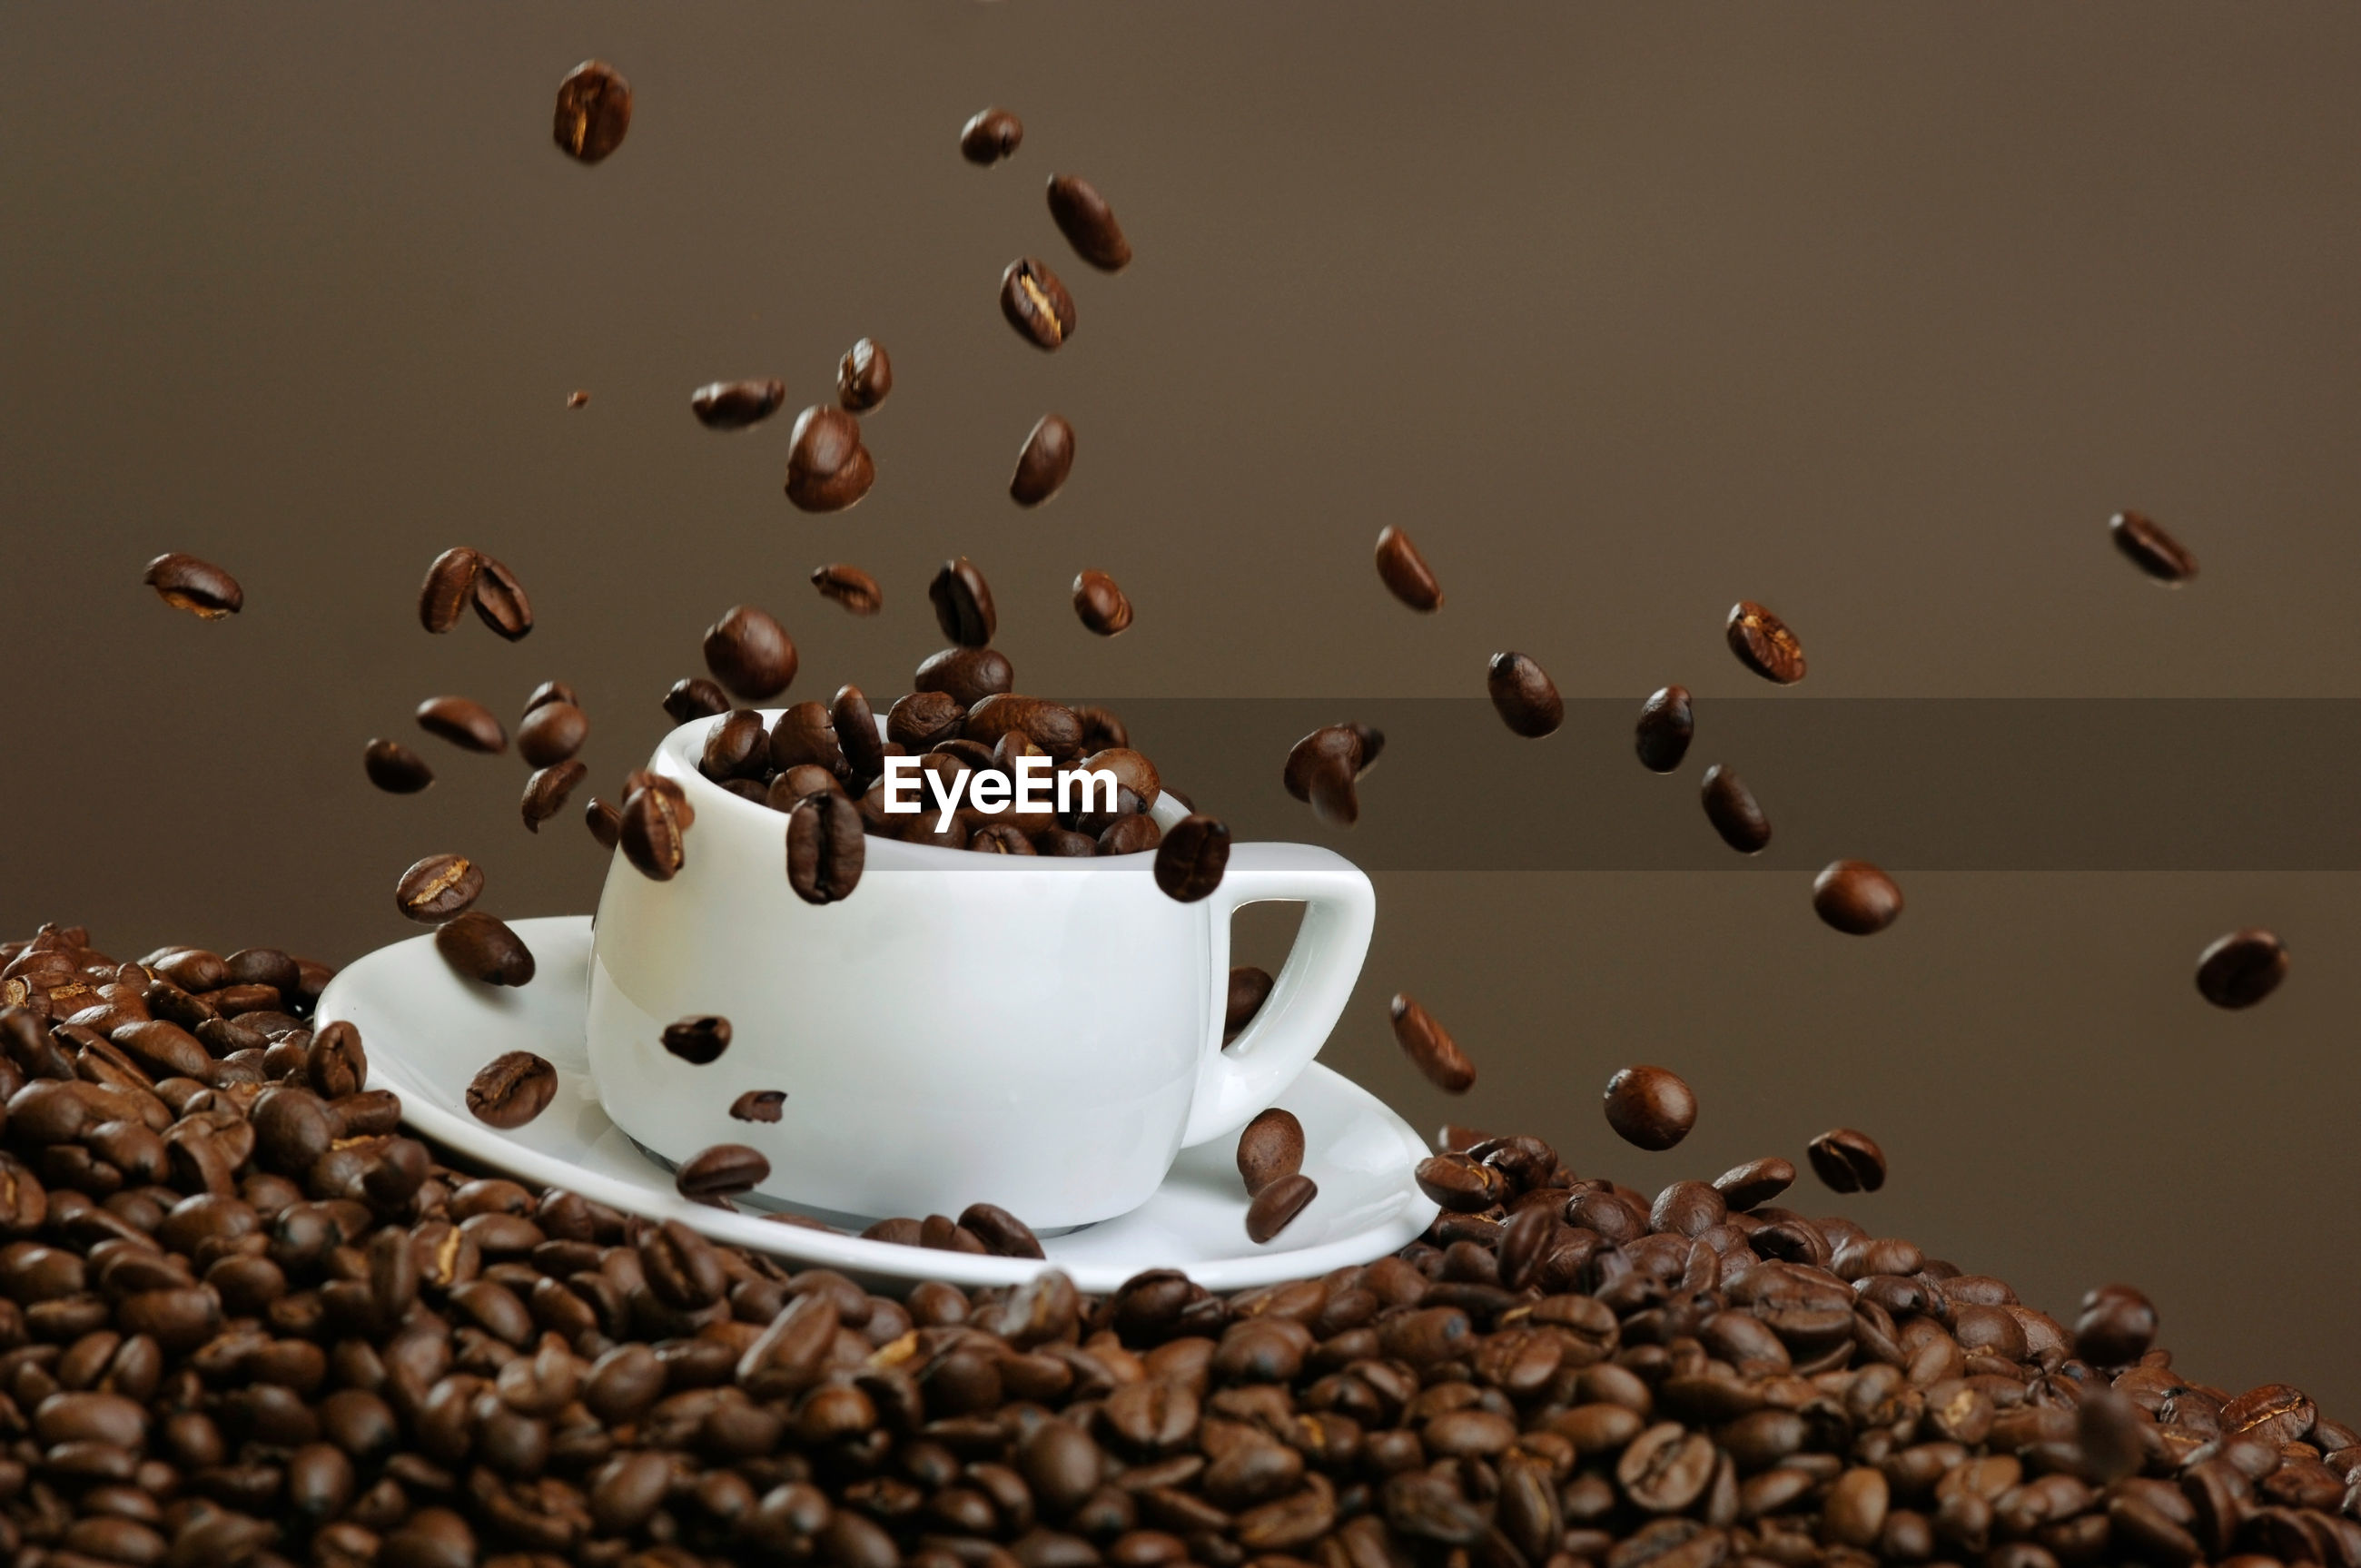 Roasted coffee beans splashing over cup and saucer